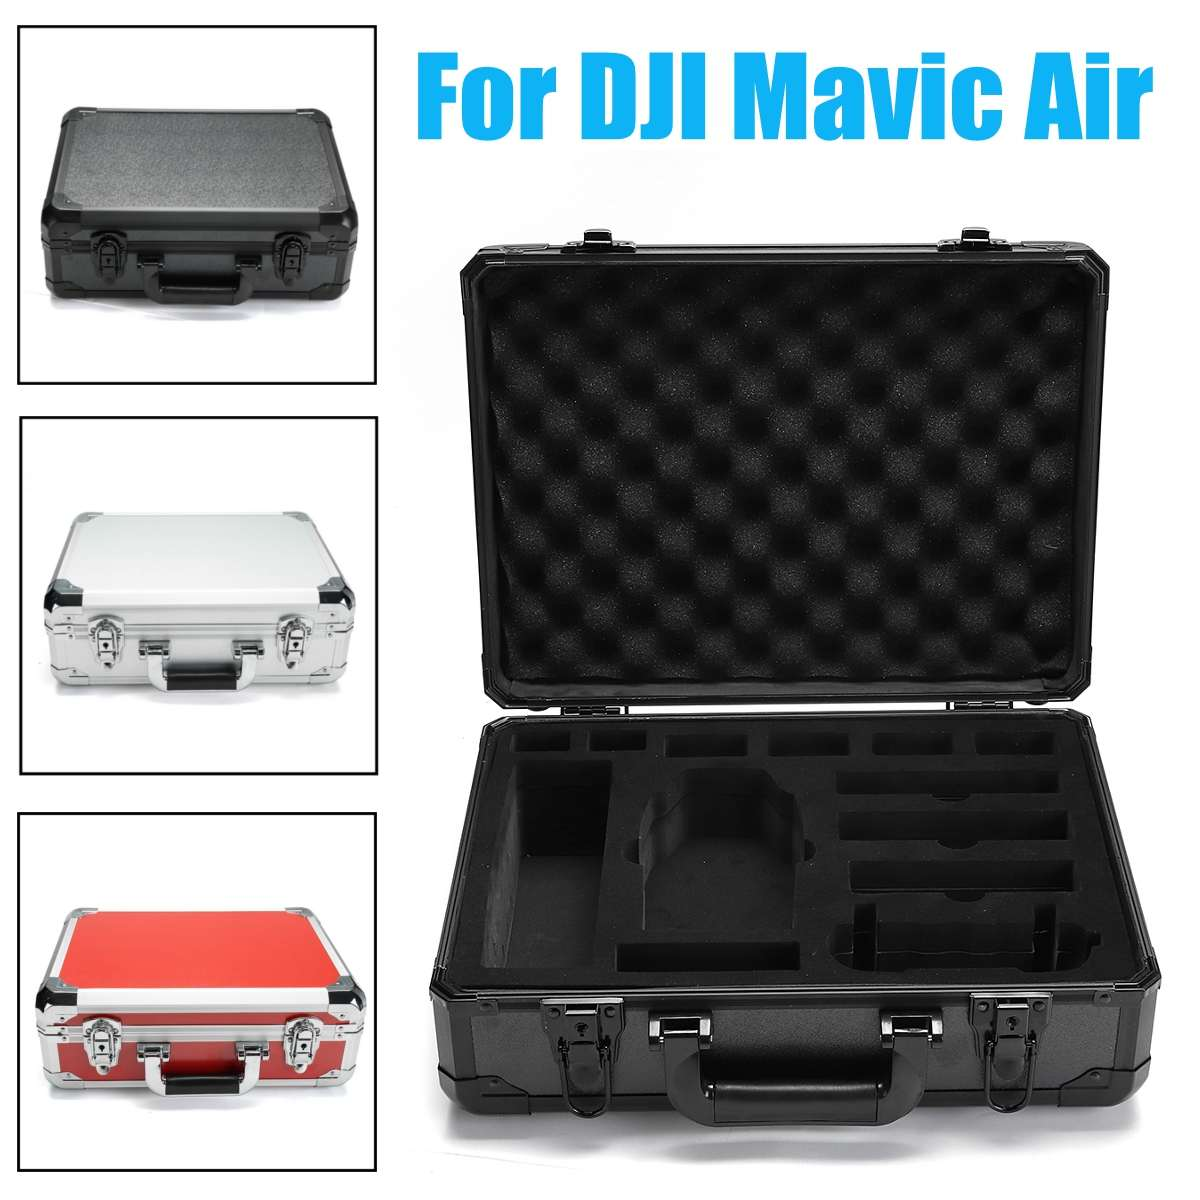 Waterproof Hard Shell Handbag Carrying Drone Bag Storage Case For DJI Mavic Air Drone Accessories